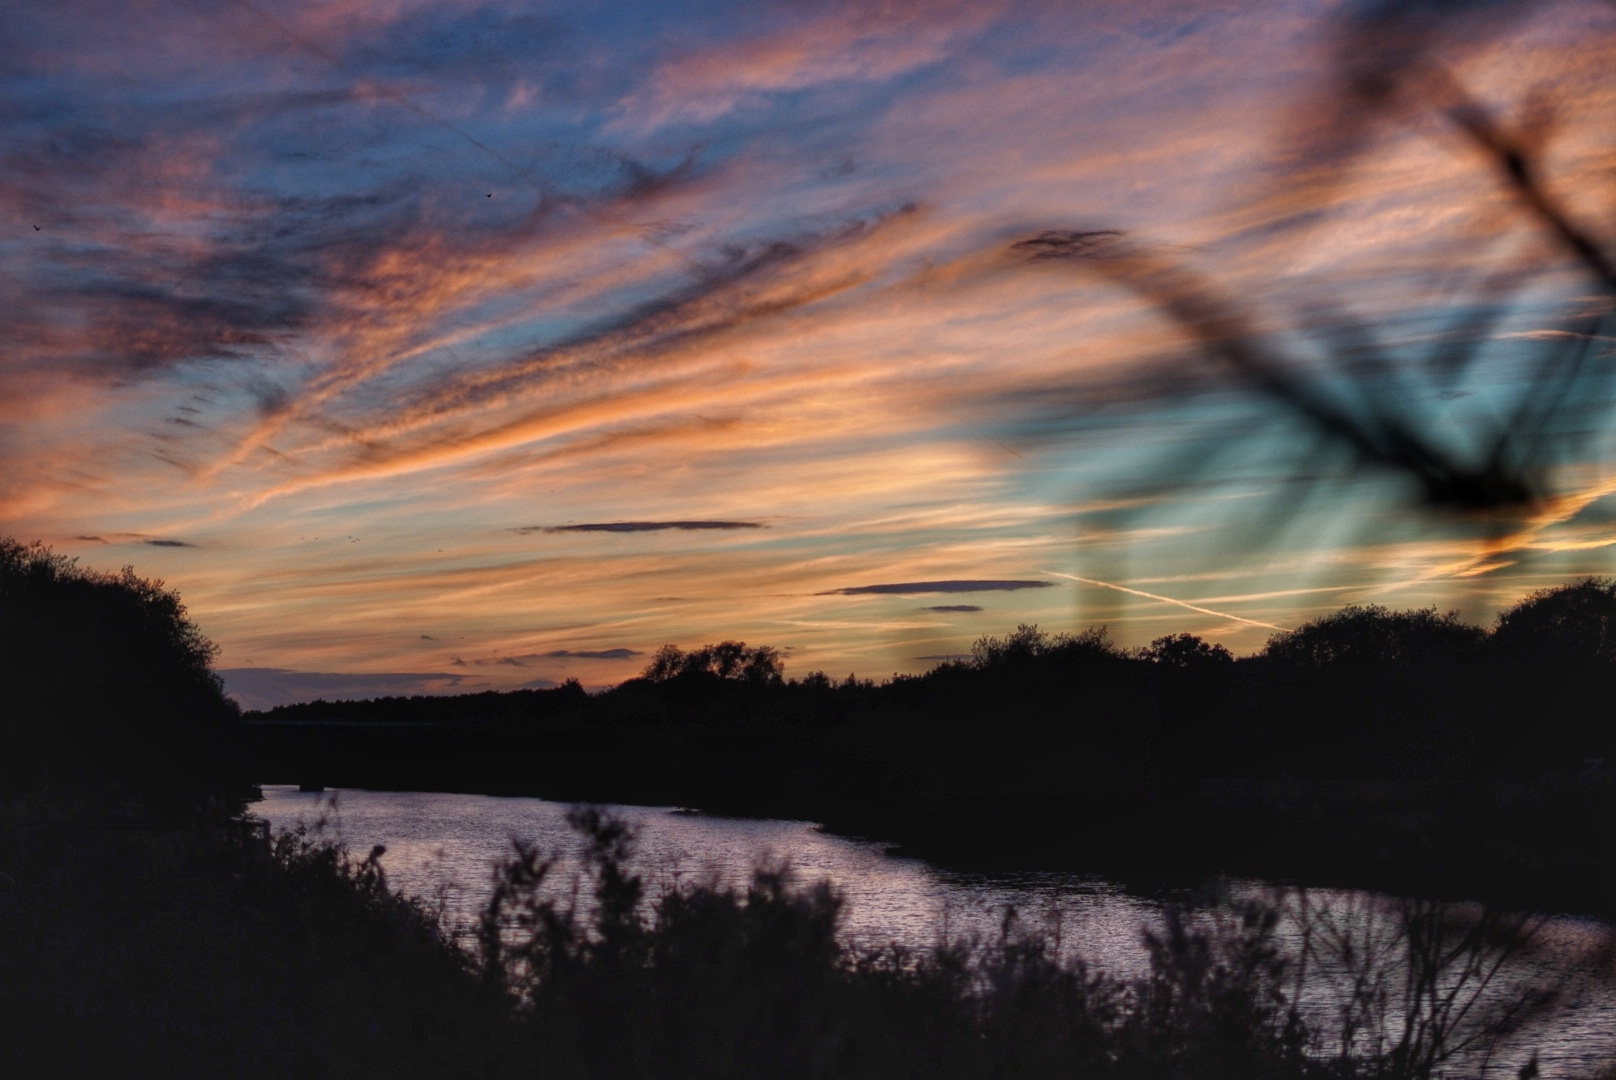 Landscape of a river with banks either side, above is a beautiful sunset; the sky is a mixture of blues, oranges, pinks and purples.